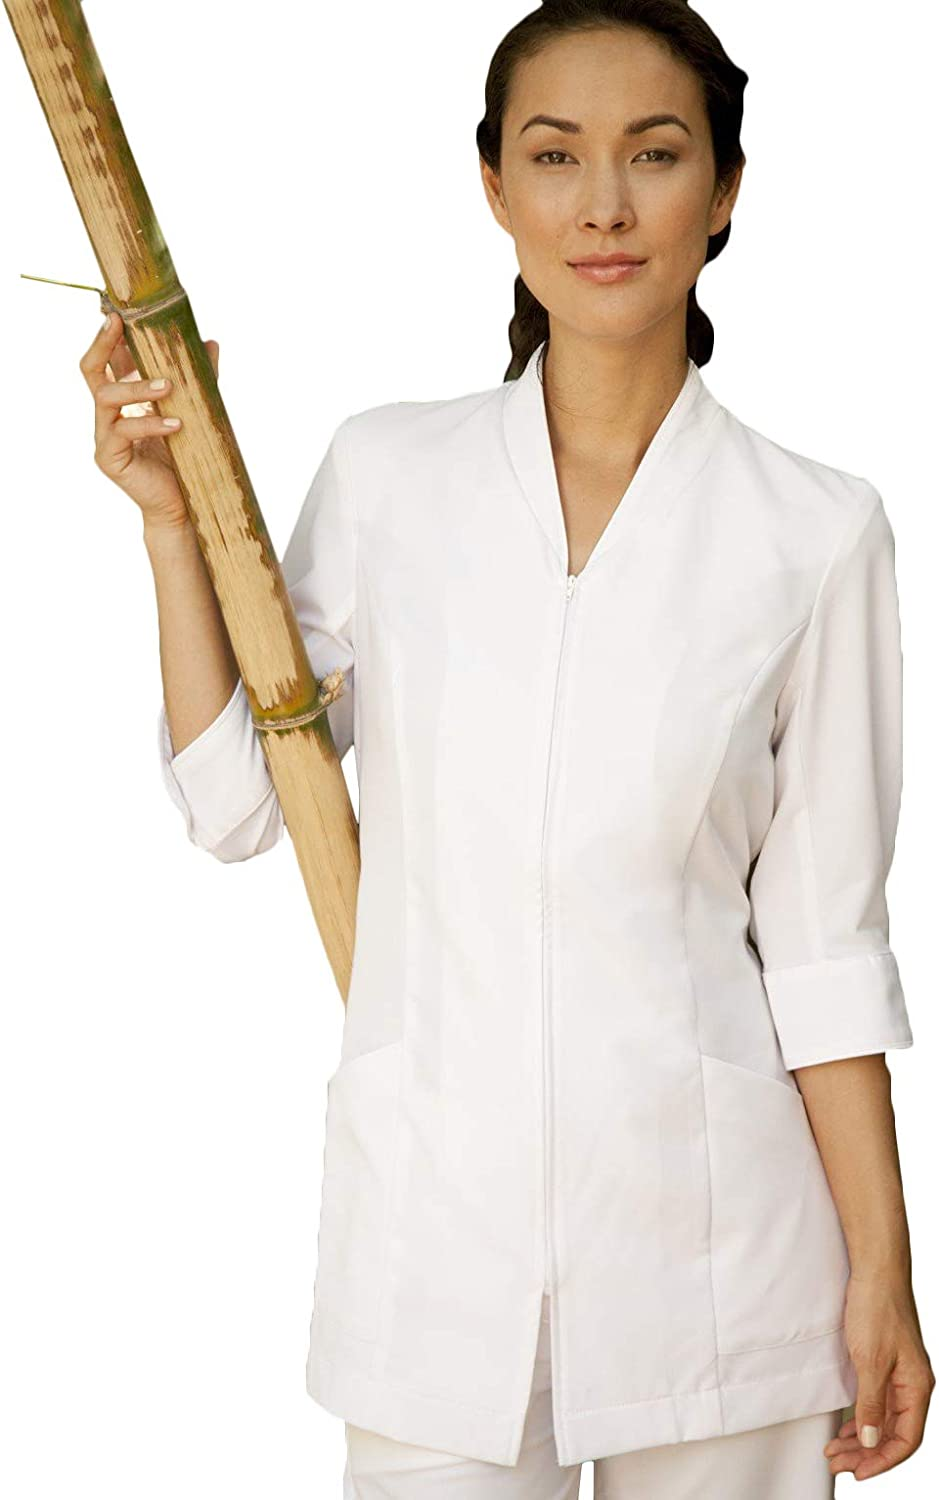 Averill's Sharper Uniforms Ladies Pravia with Front Ranking TOP2 Pipin Zipper Max 43% OFF